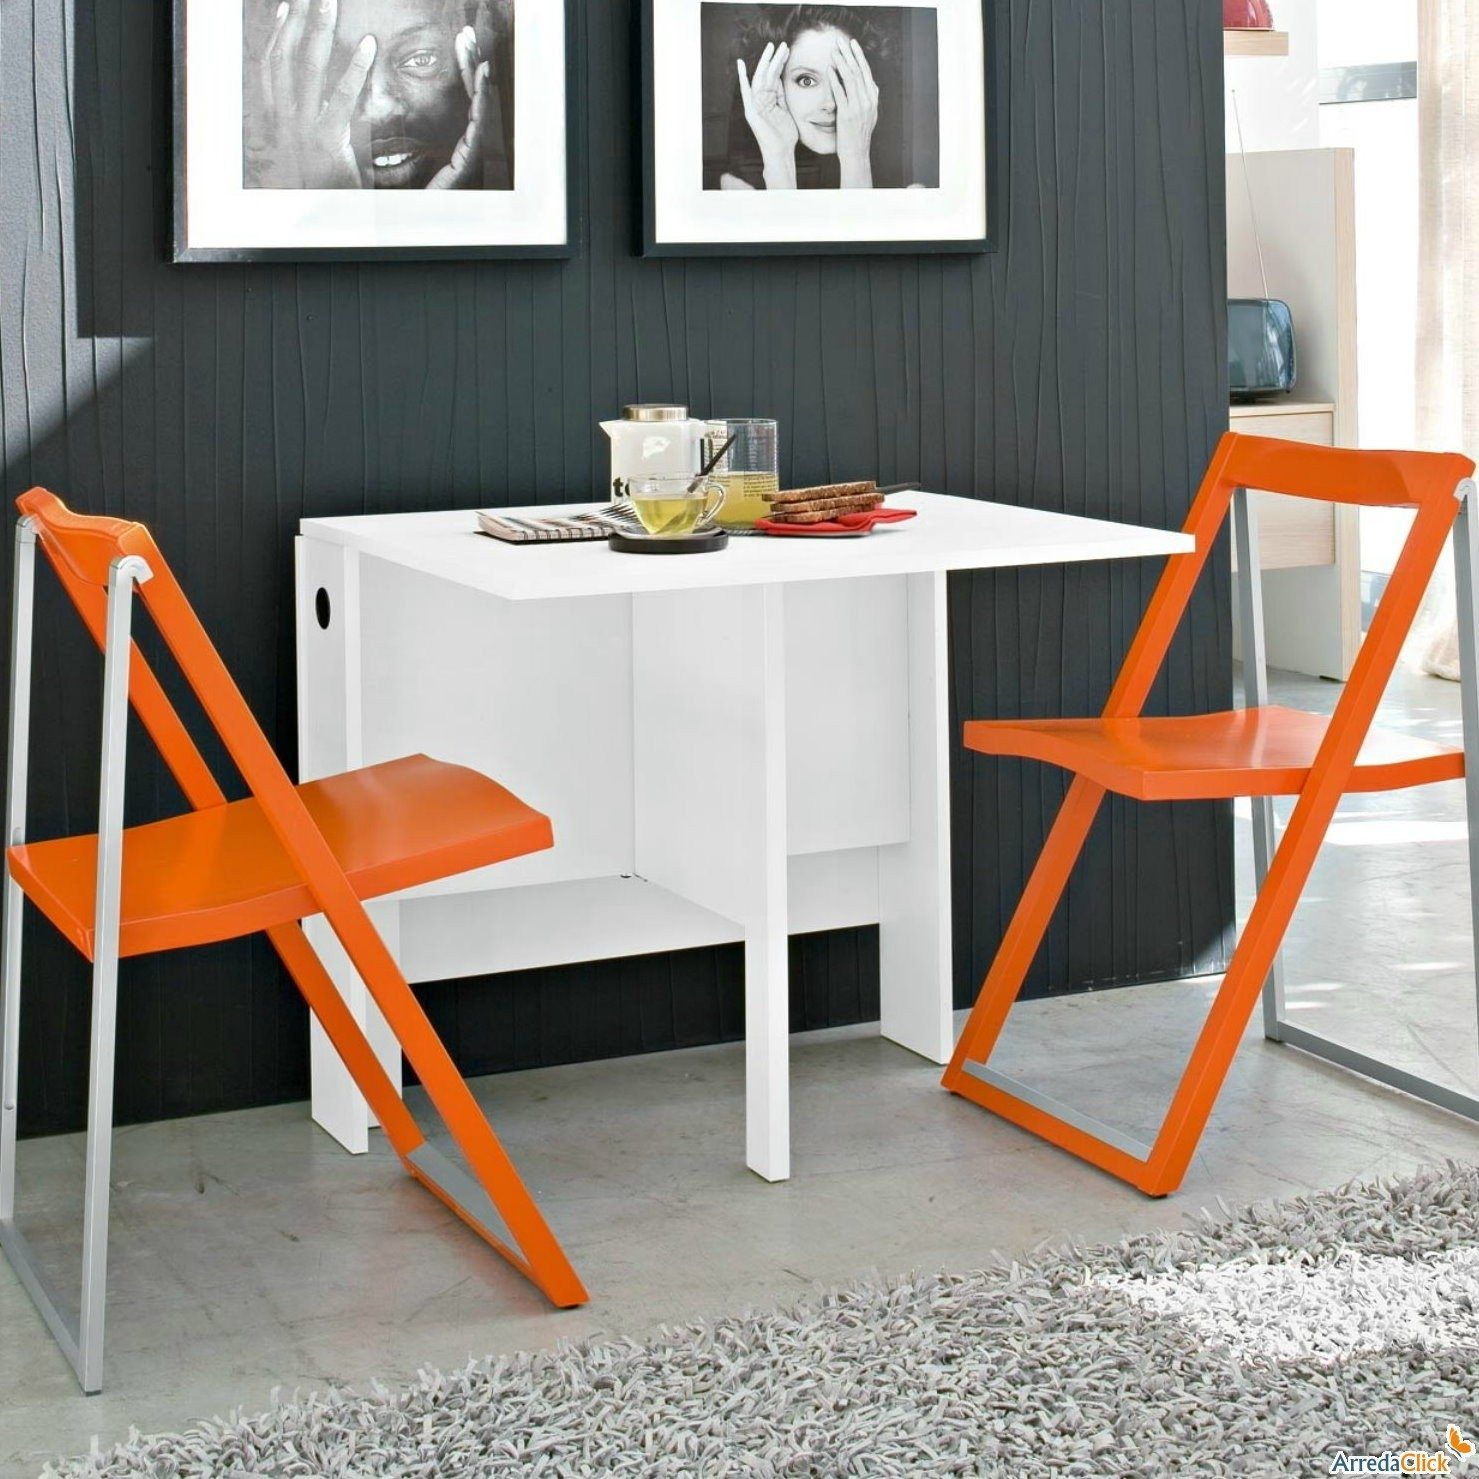 Space Saving Kitchen Table Ideas - Kitchen Counter Decorating Ideas Check more at http://www.entropiads.com/space-saving-kitchen-table-ideas/